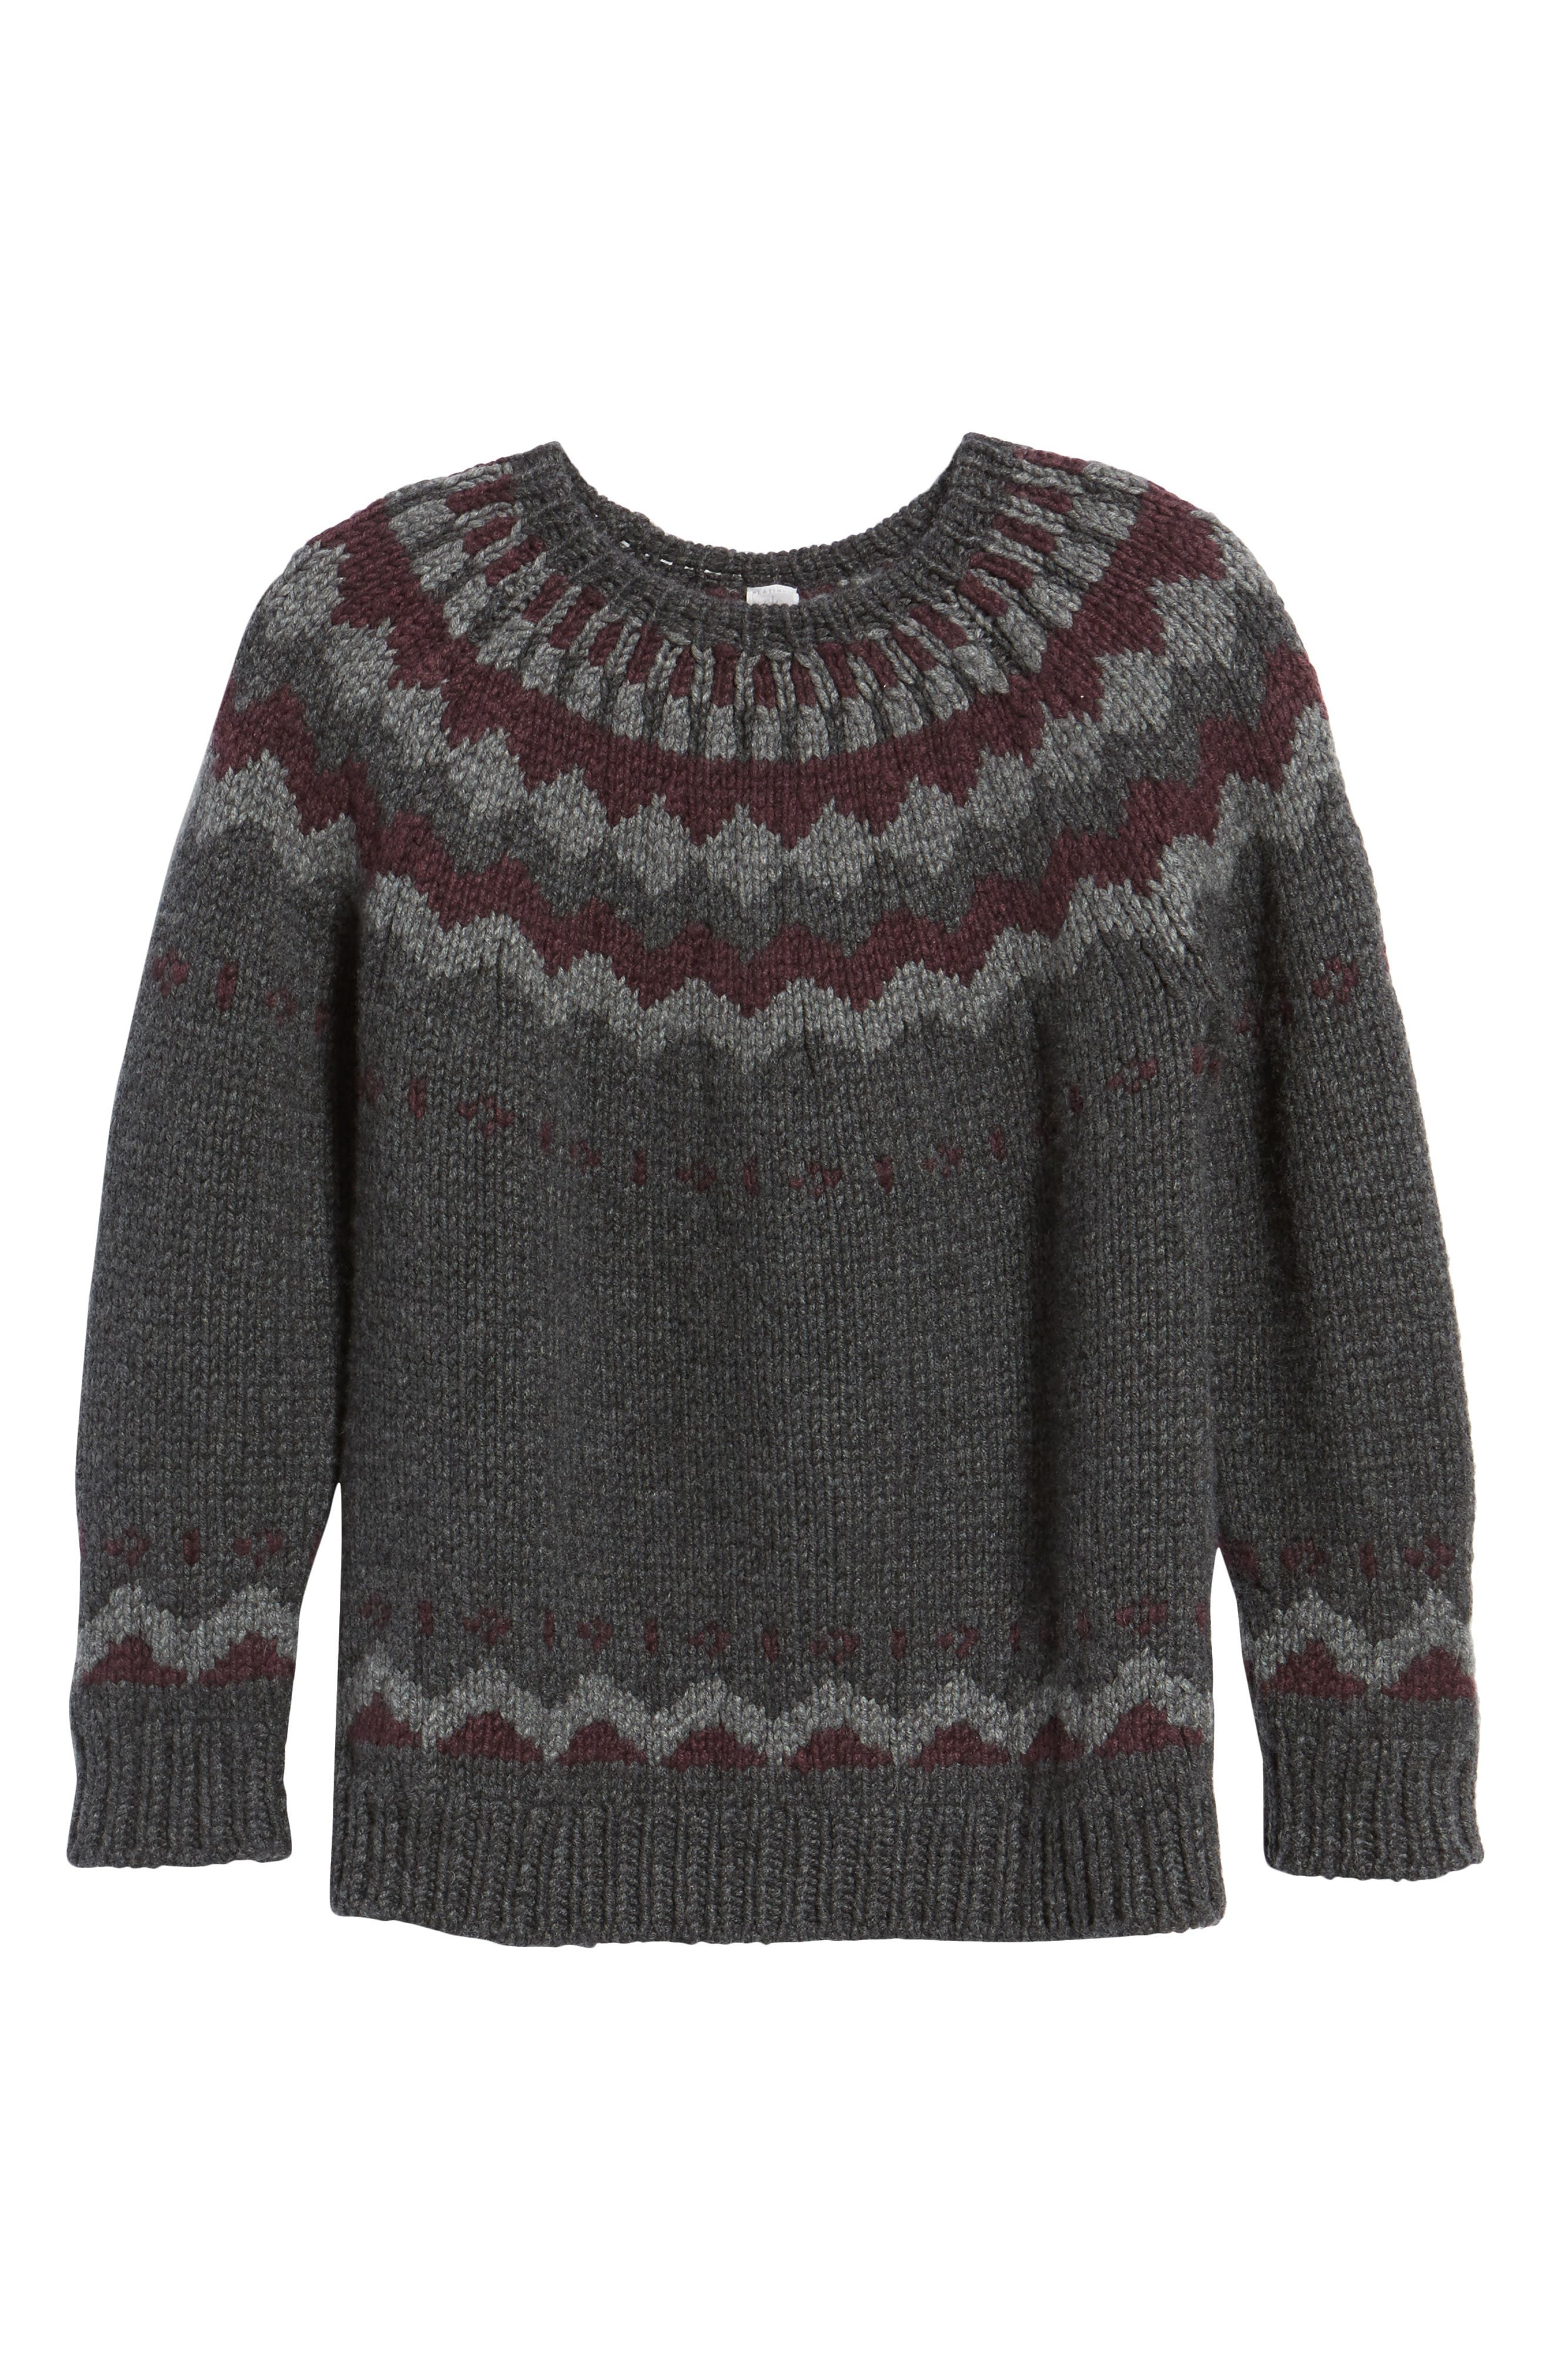 Intarsia Cashmere Sweater,                             Alternate thumbnail 6, color,                             Grey / Burgundy/ Light Grey